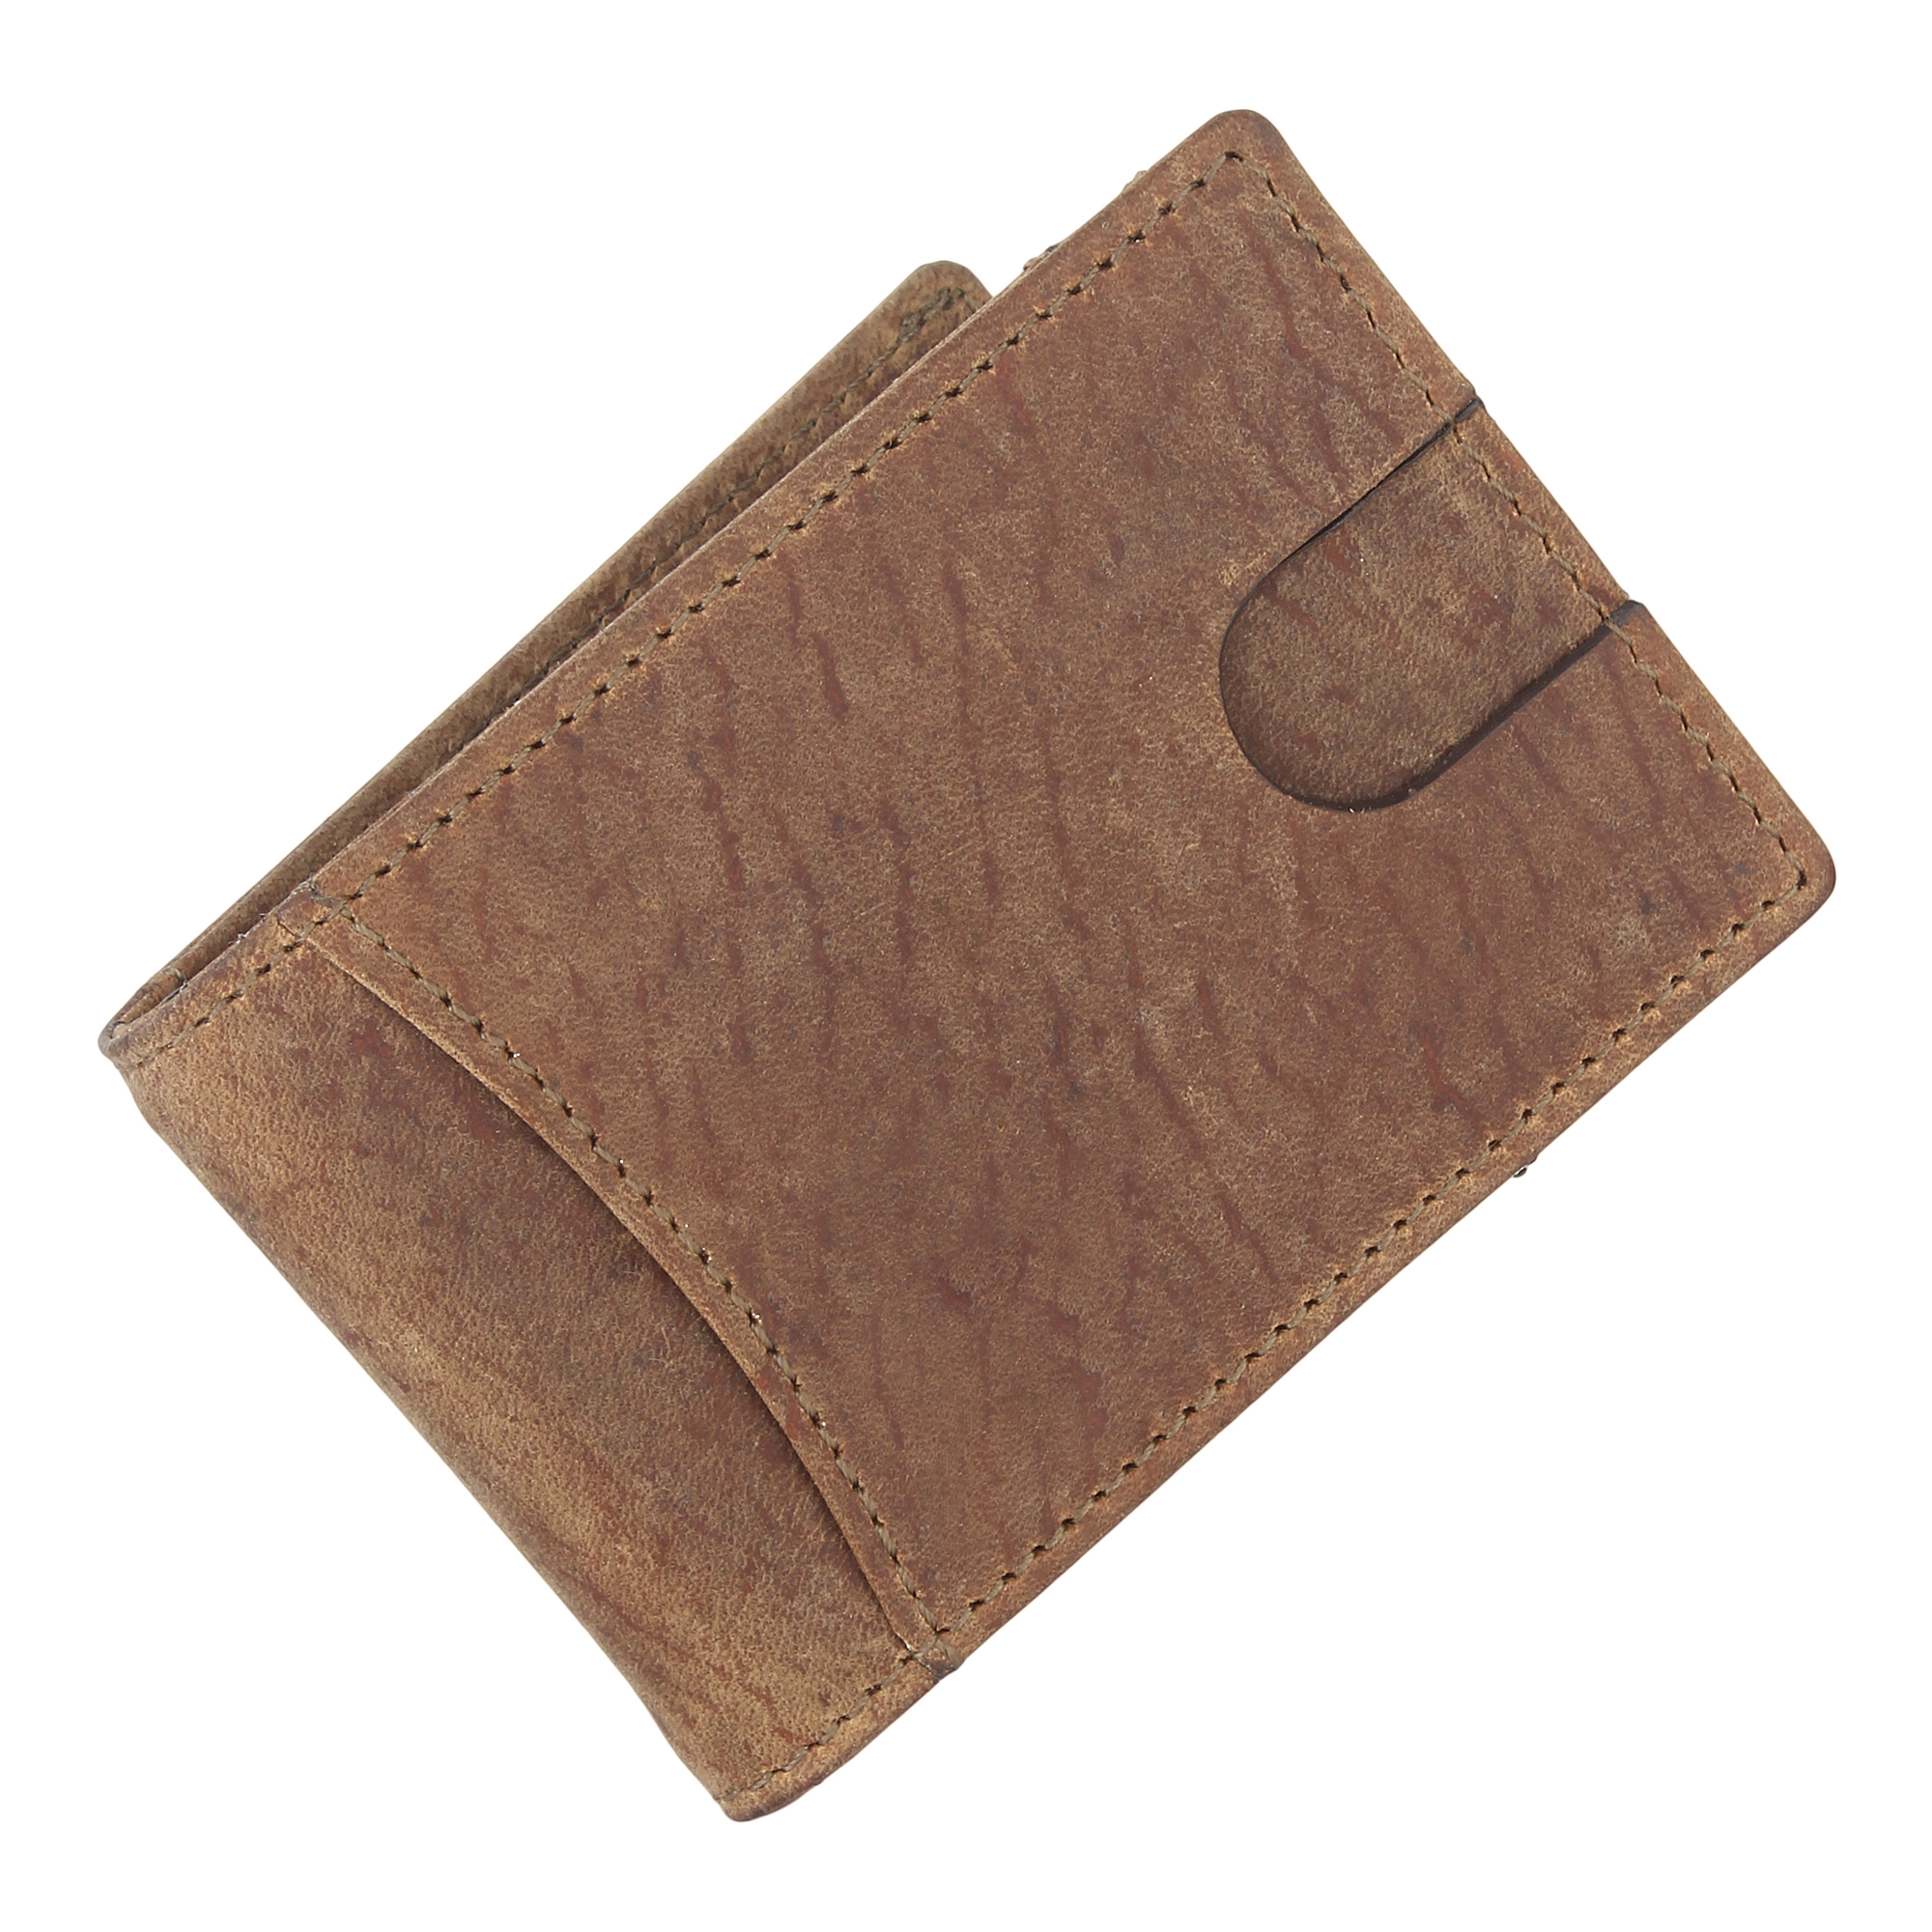 Leather Card Holder Wallet Manufacturers In Armenia, Card Holder Wallet Suppliers In Armenia, Card Holder Wallet Wholesalers In Armenia, Card Holder Wallet Traders In Armenia